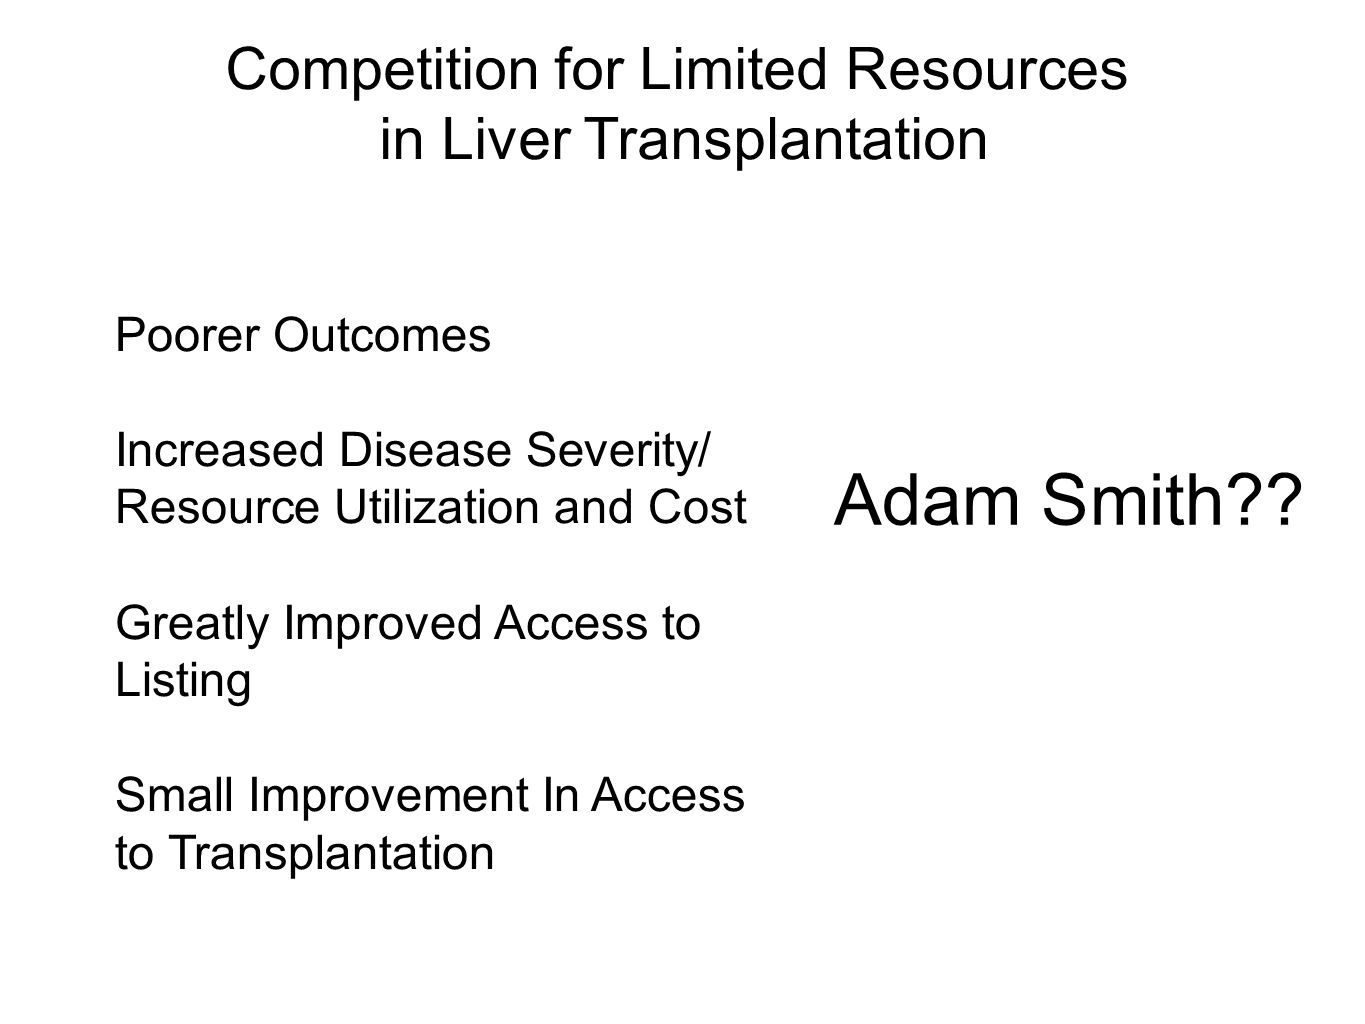 Competition for Limited Resources in Liver Transplantation Poorer Outcomes Increased Disease Severity/ Resource Utilization and Cost Greatly Improved Access to Listing Small Improvement In Access to Transplantation Adam Smith